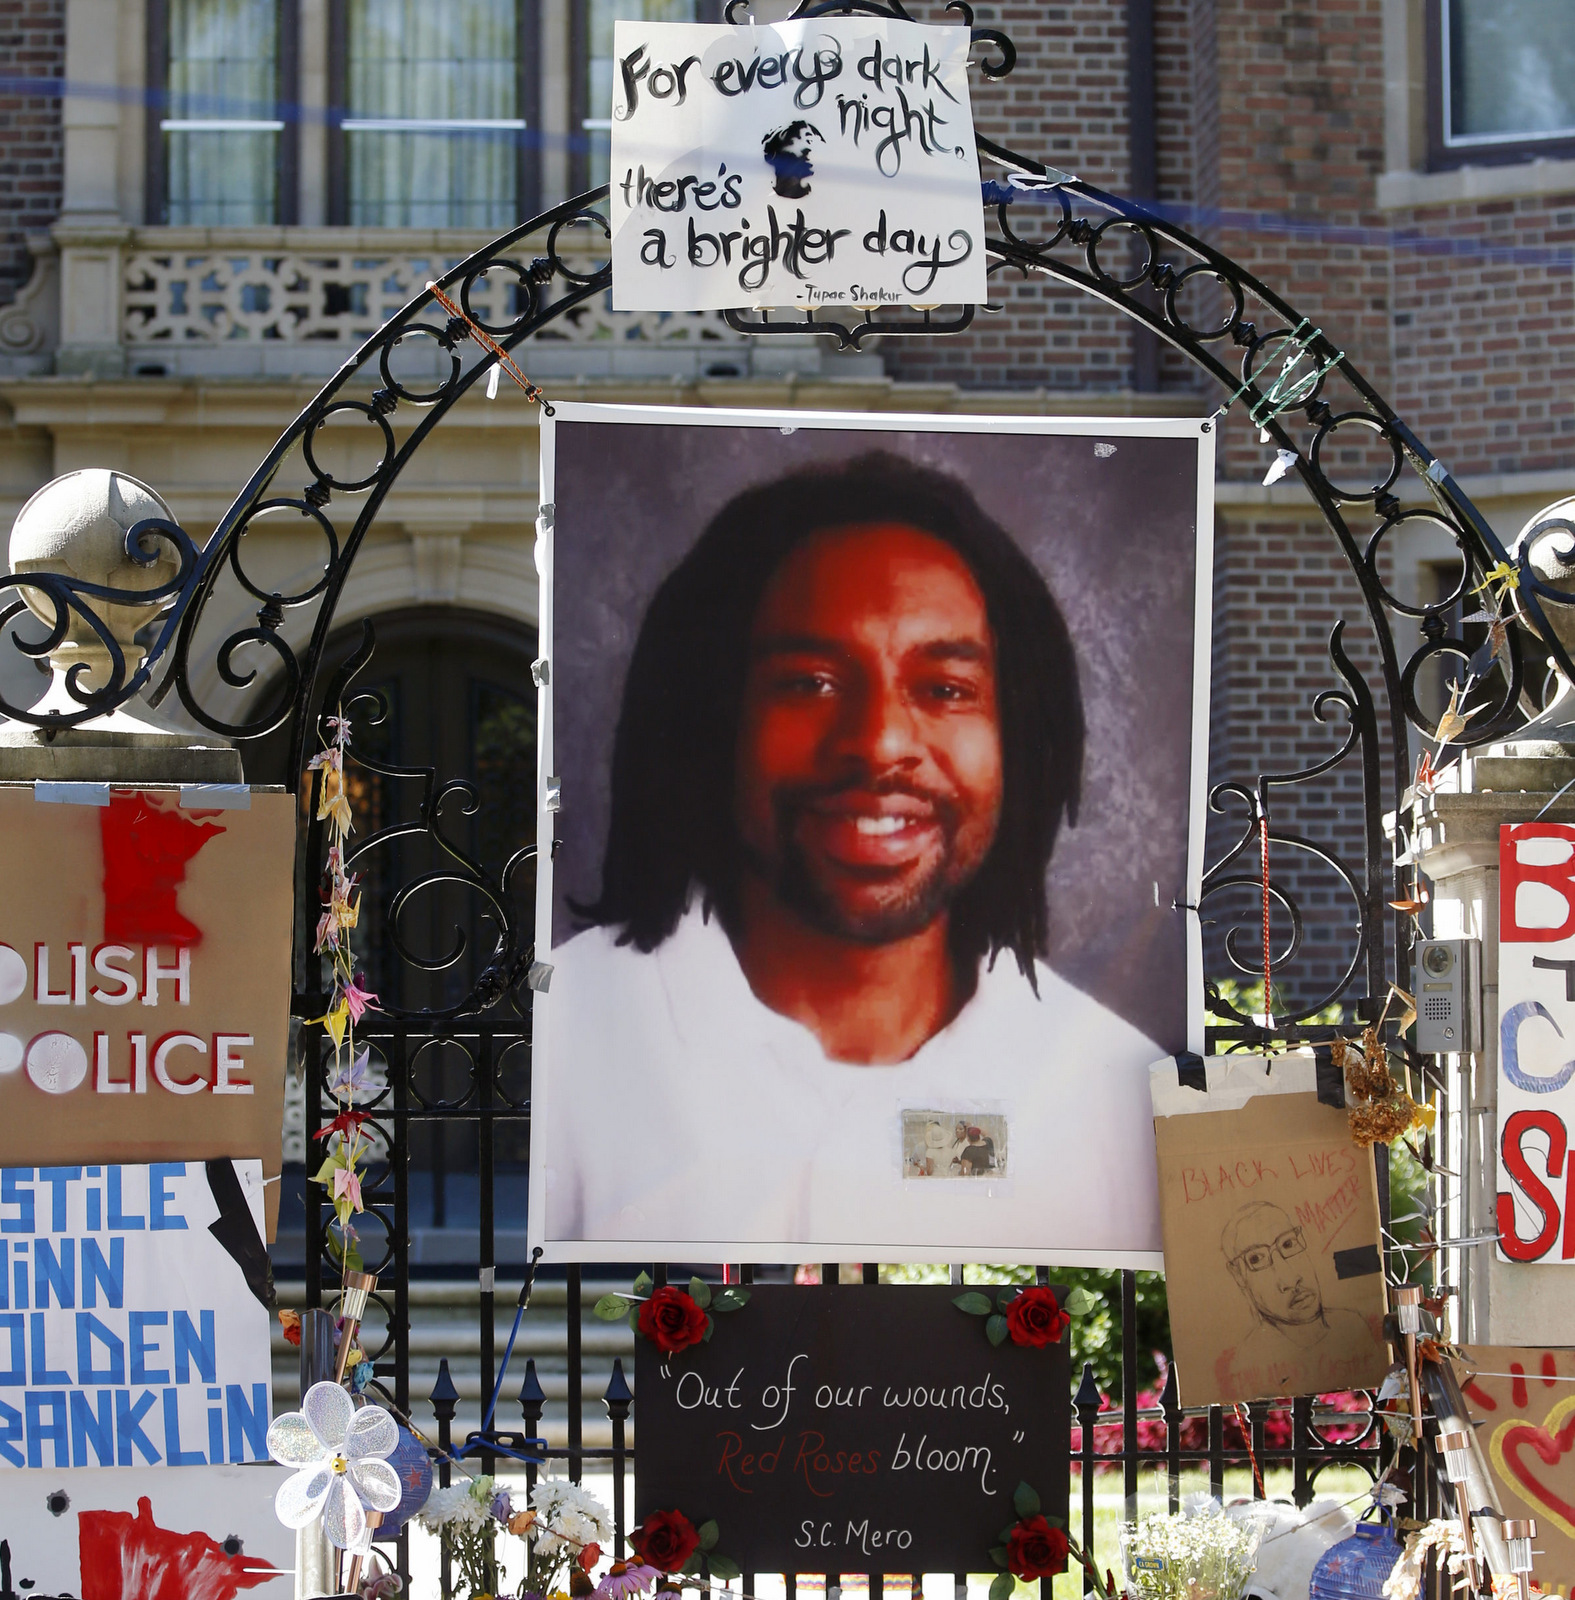 A memorial including a photo of Philando Castile adorns the gate to the governor's residence where protesters demonstrated in St. Paul, Minn., against the July 6 shooting death of Castile. (AP/Jim Mone)